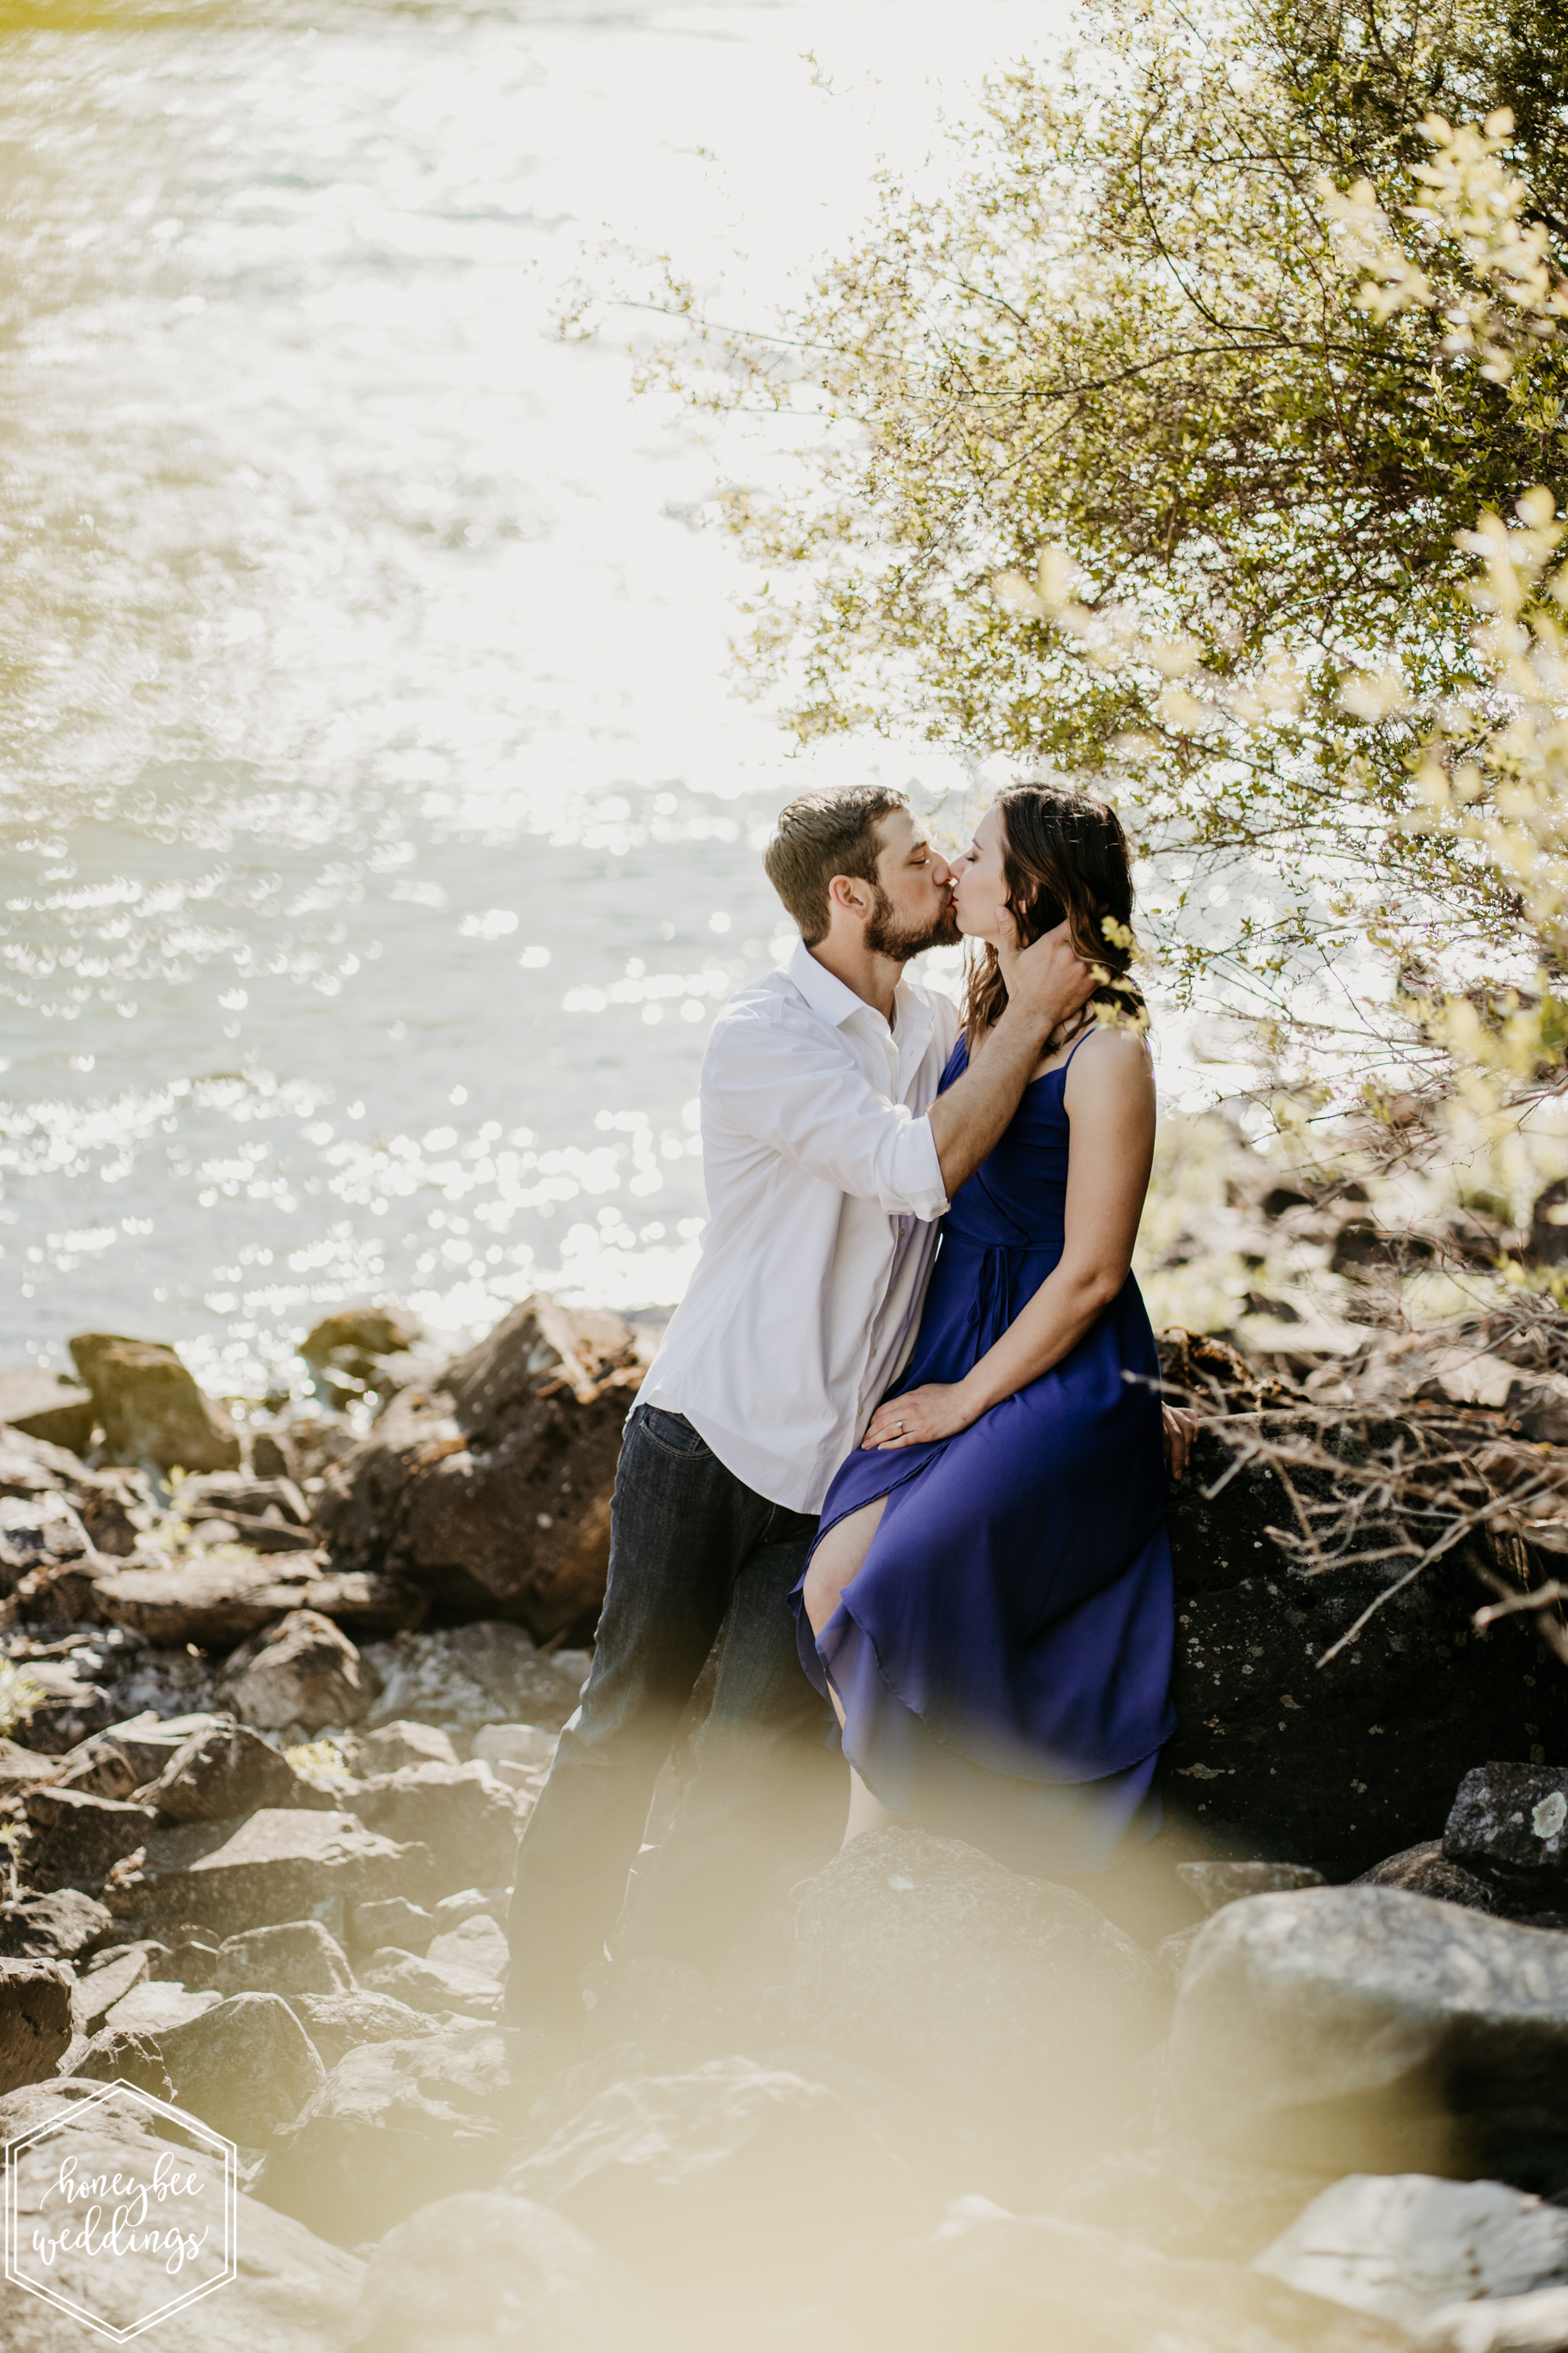 038Montana Wedding Photographer_Polson Engagement Session_Carrie & Matt_Honeybee Weddings_May 11, 2019-106.jpg